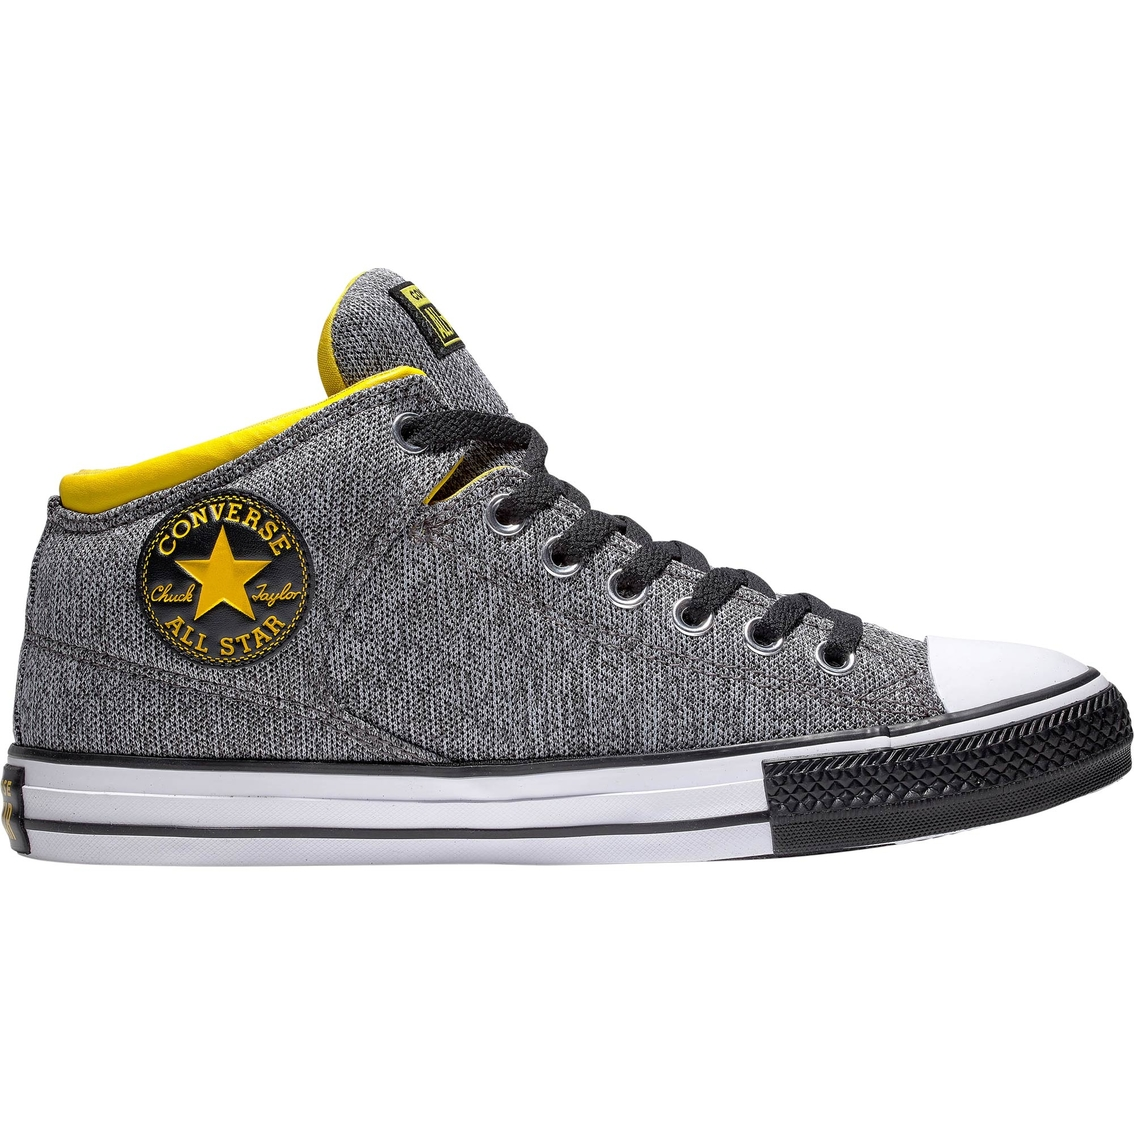 eb193c7d9c76 Converse Chuck Taylor All Star High Street Sneakers